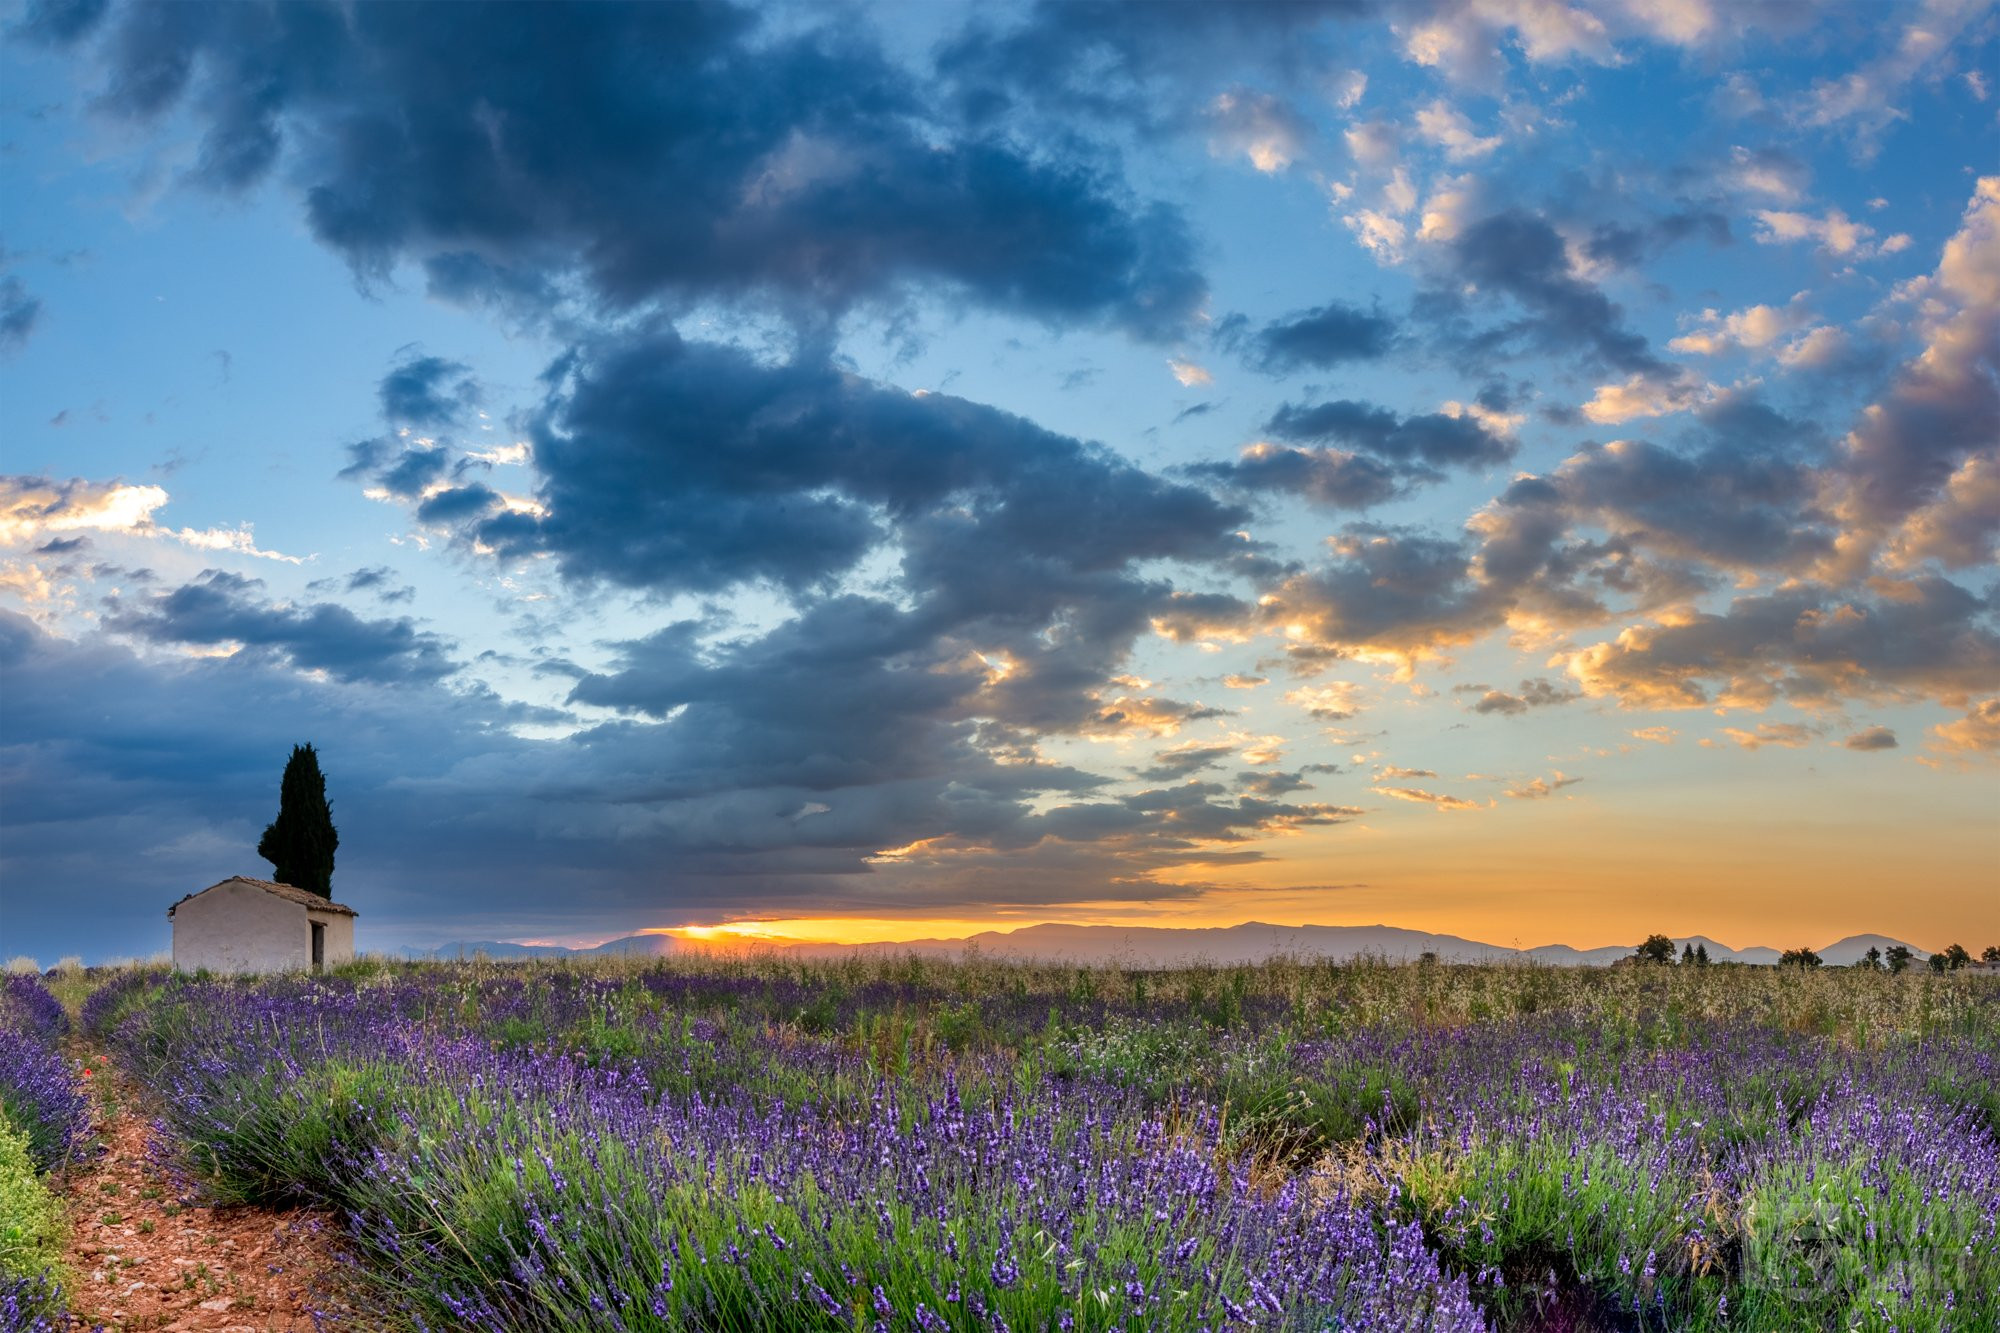 Valensole lavender field and house sunrise, France